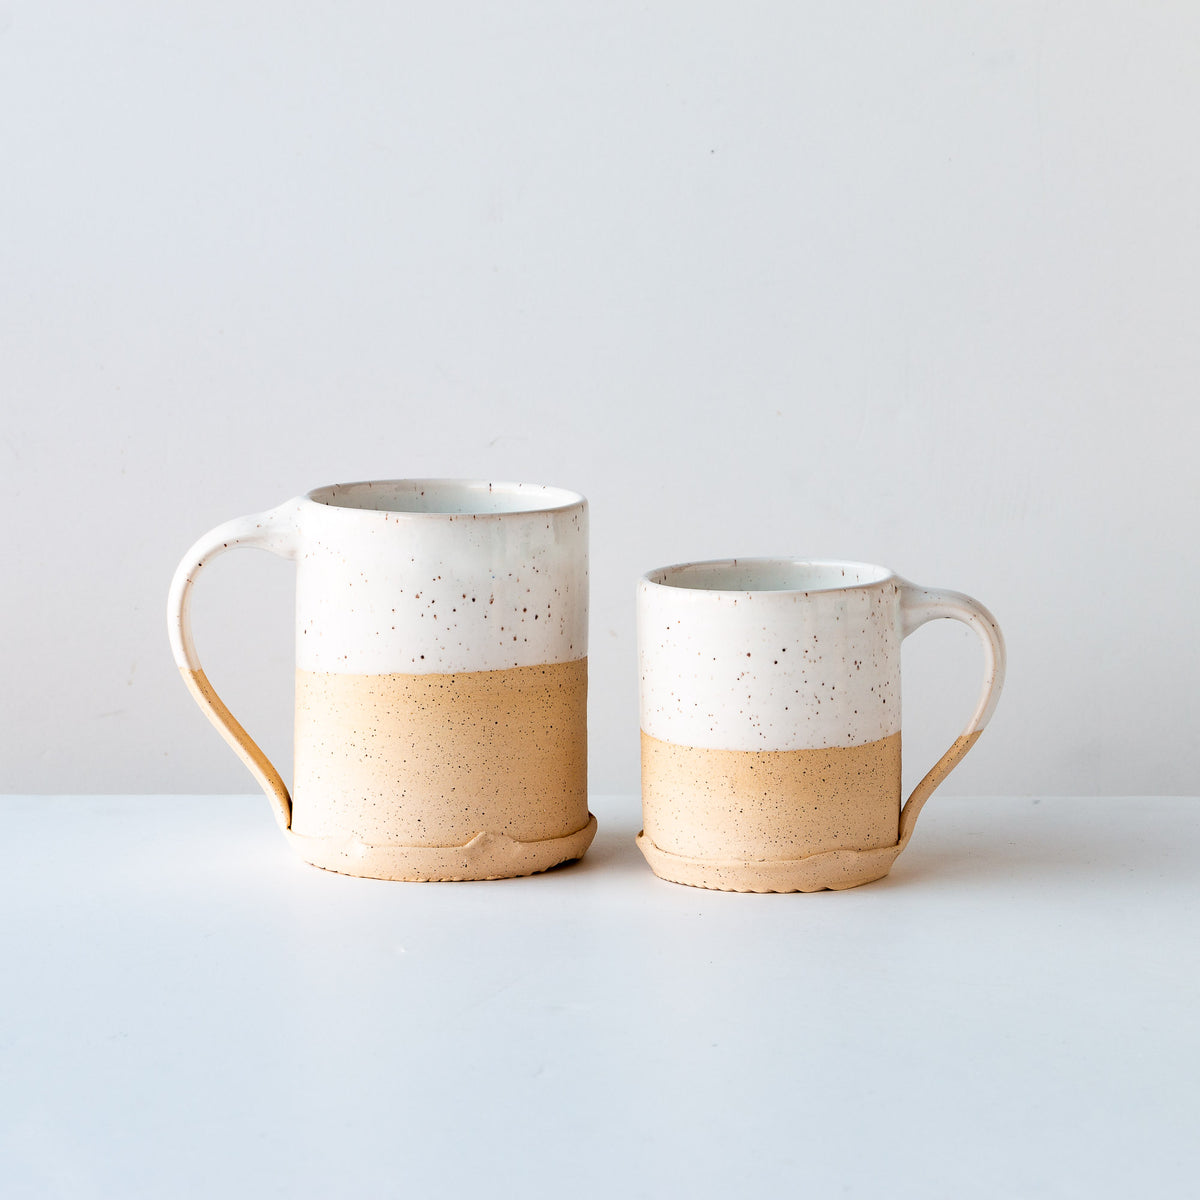 White Glaze - Handcrafted Speckled Stoneware Large Mug / Small Mug - Sold by Chic & Basta